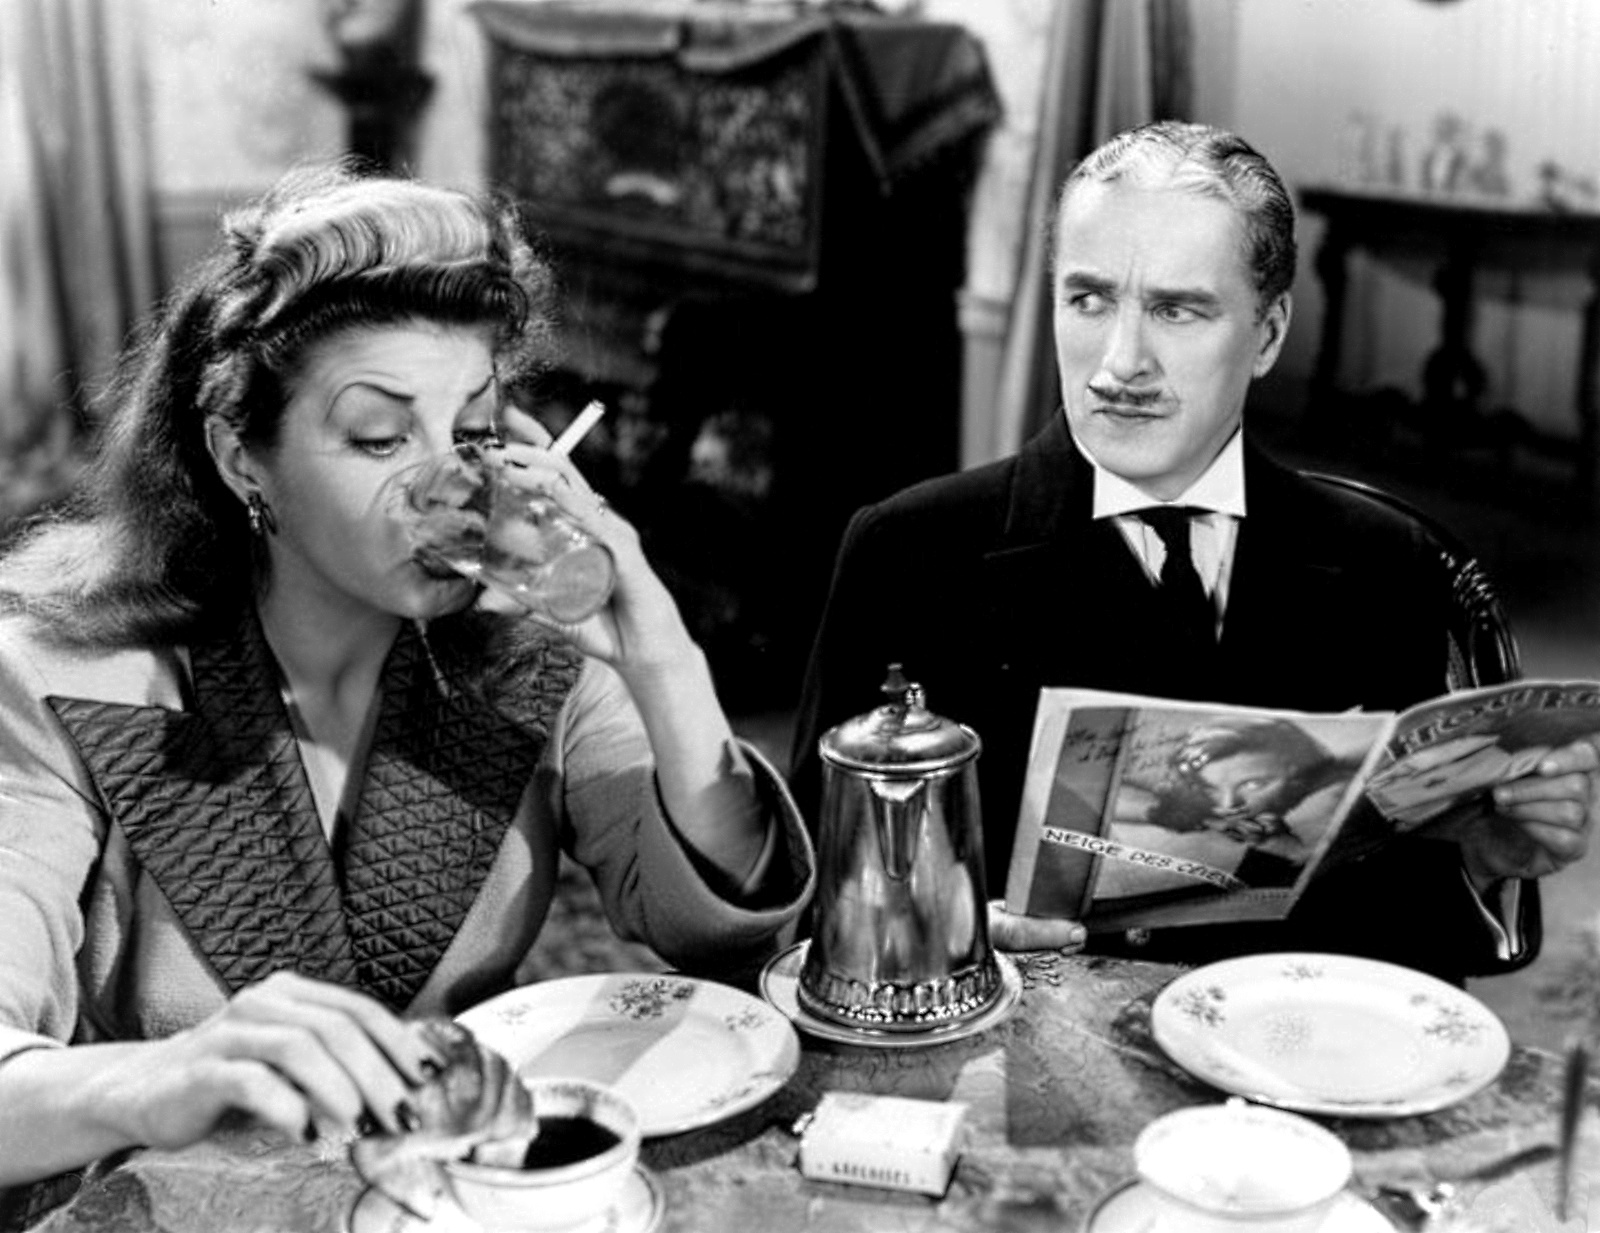 With Martha Raye in Monsieur Verdoux, 1947